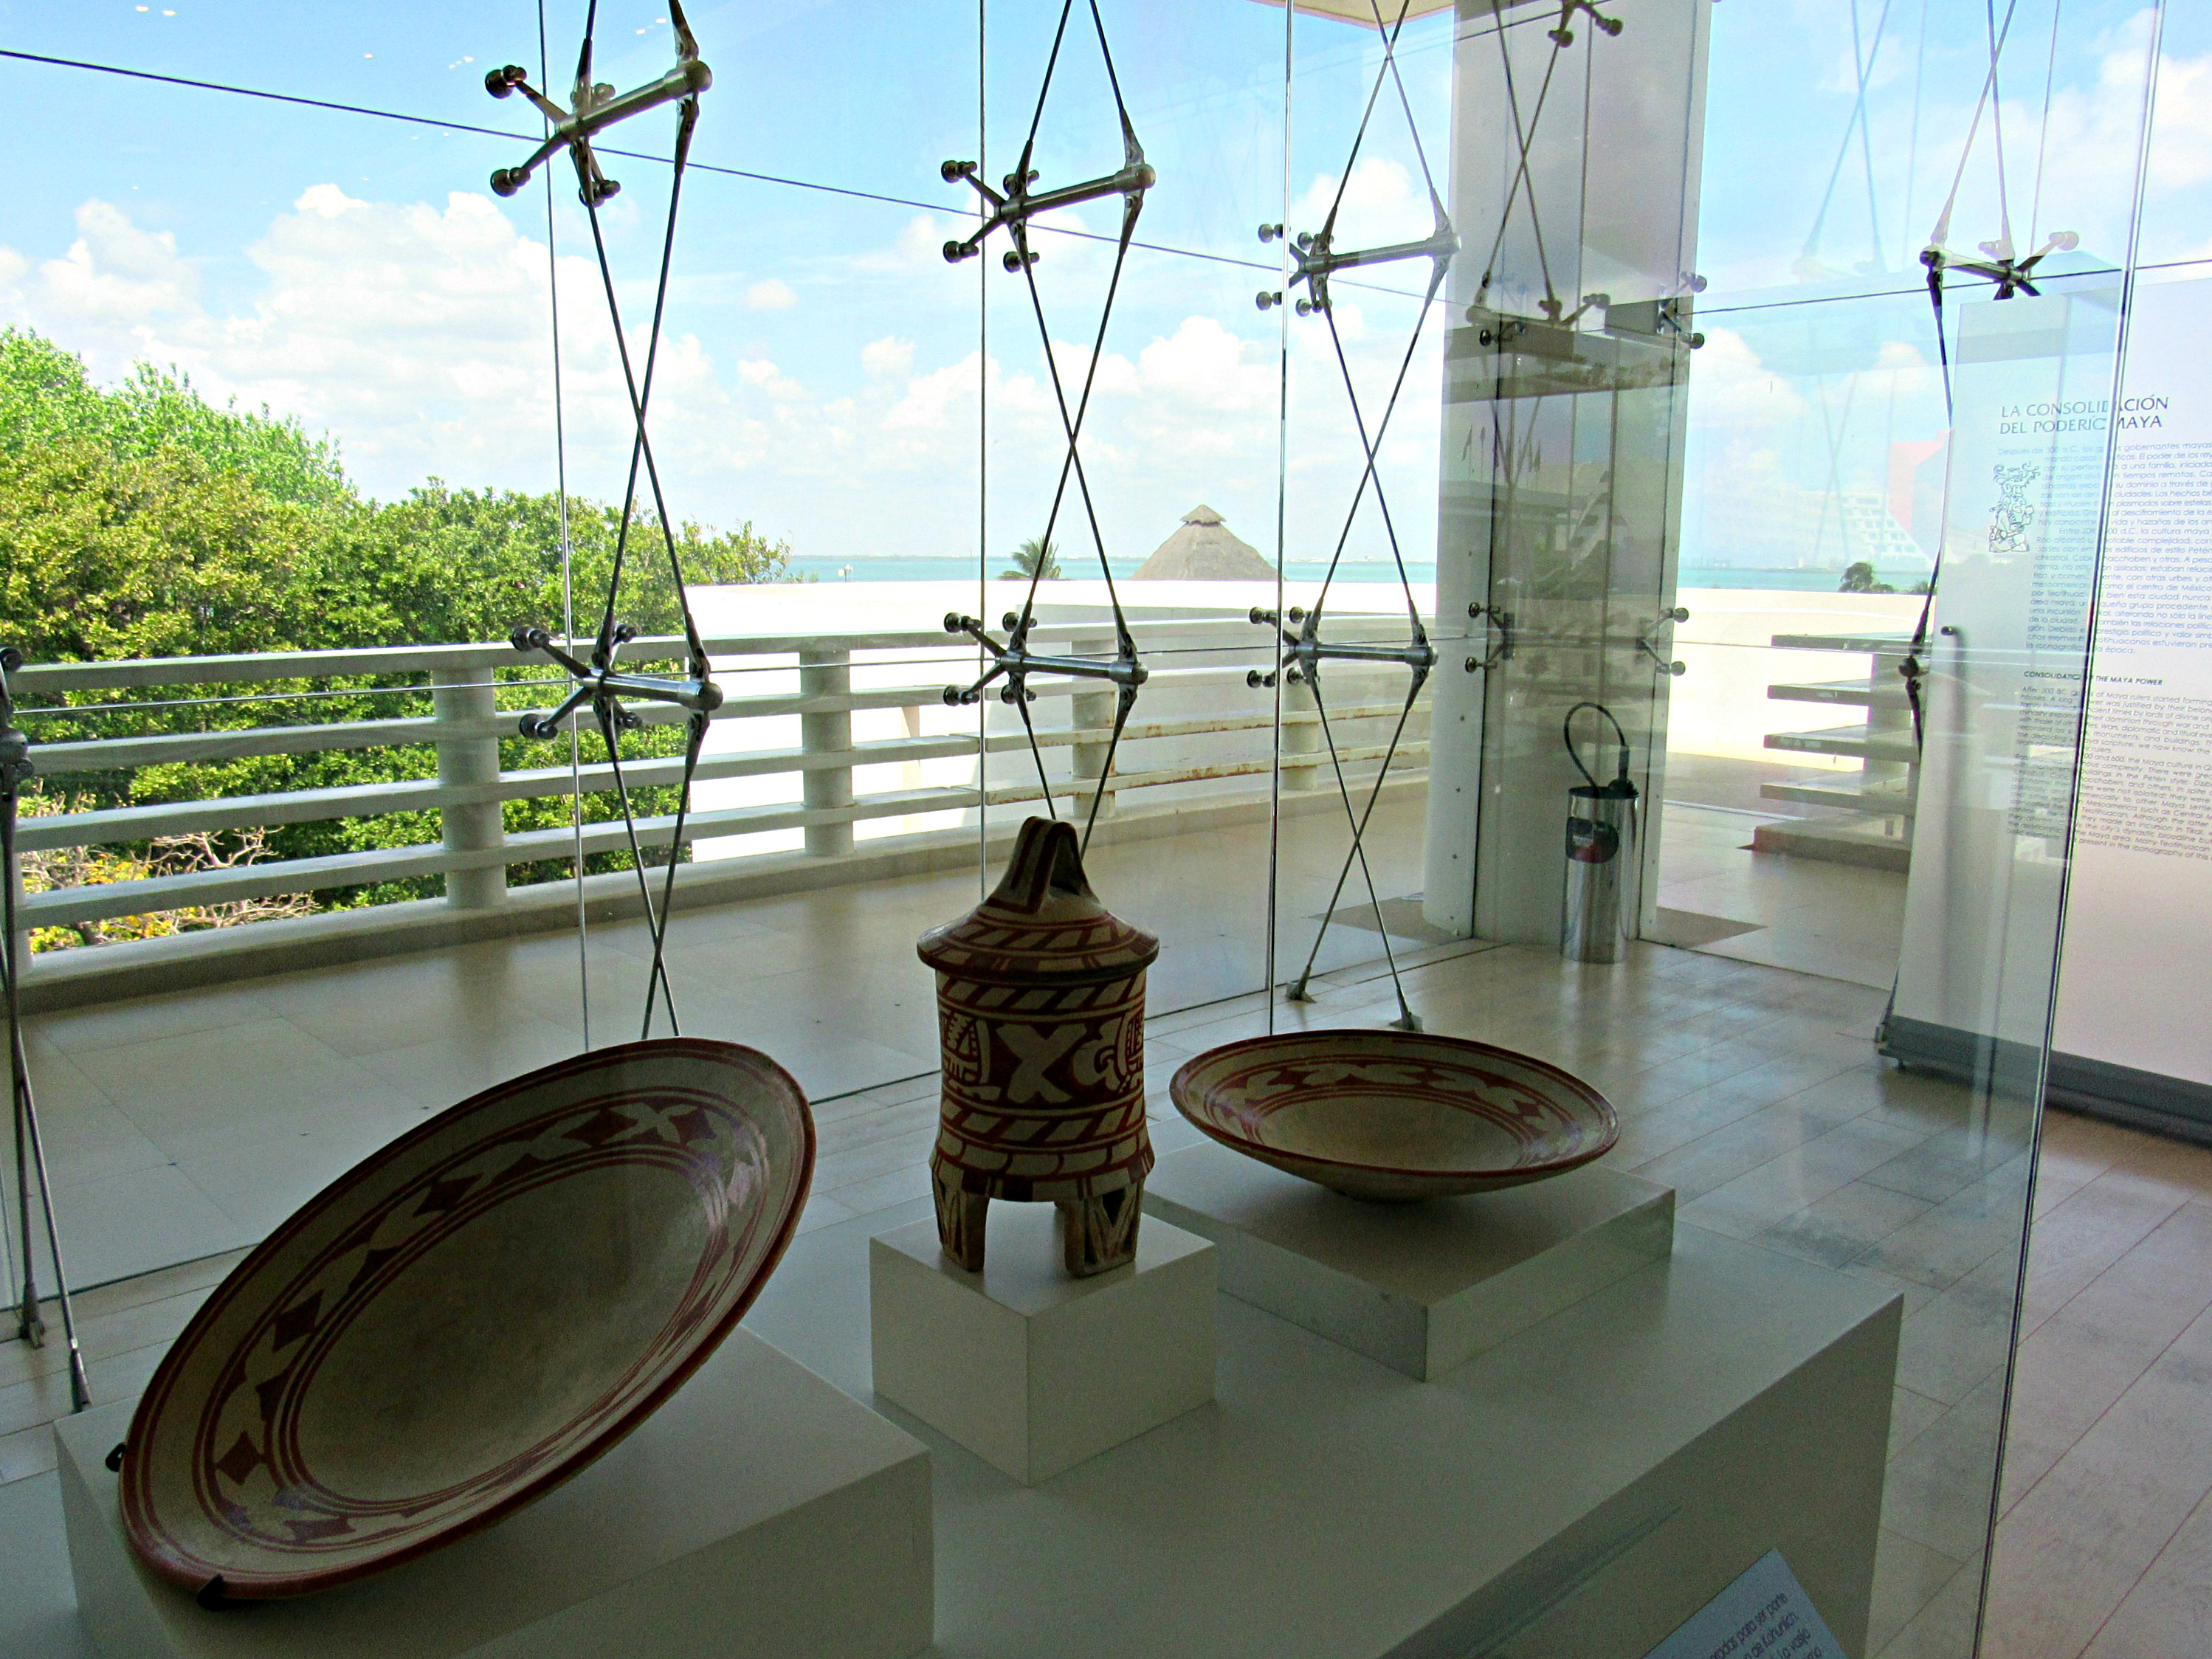 Museo Maya.Museo Maya De Cancun Cancun Mexico Attractions Lonely Planet